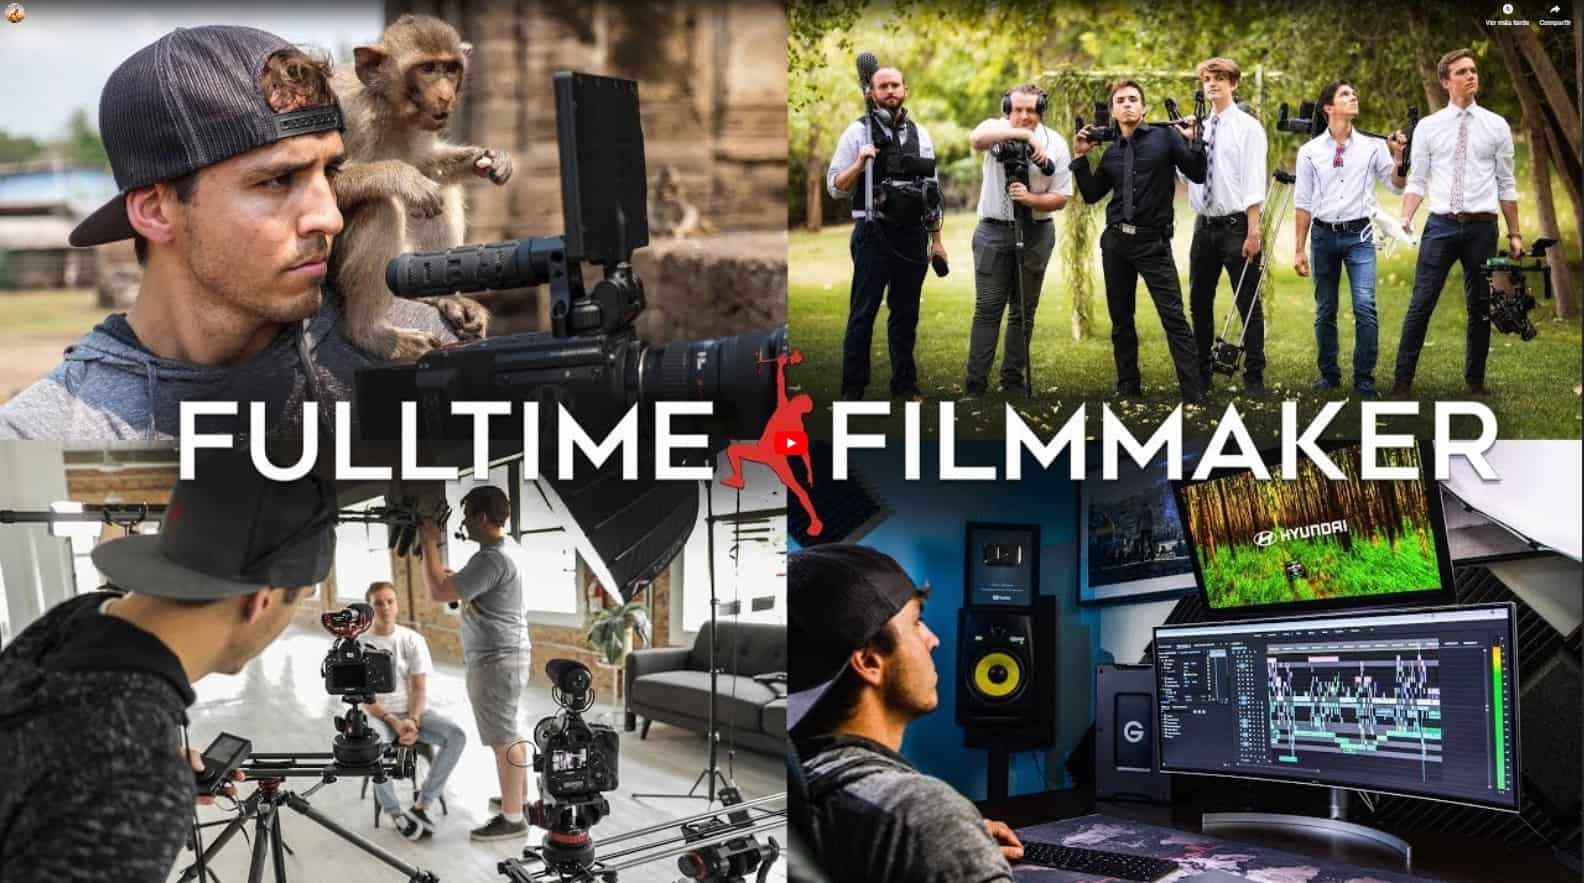 Full Time Filmmaker by Parker Walbeck 2019